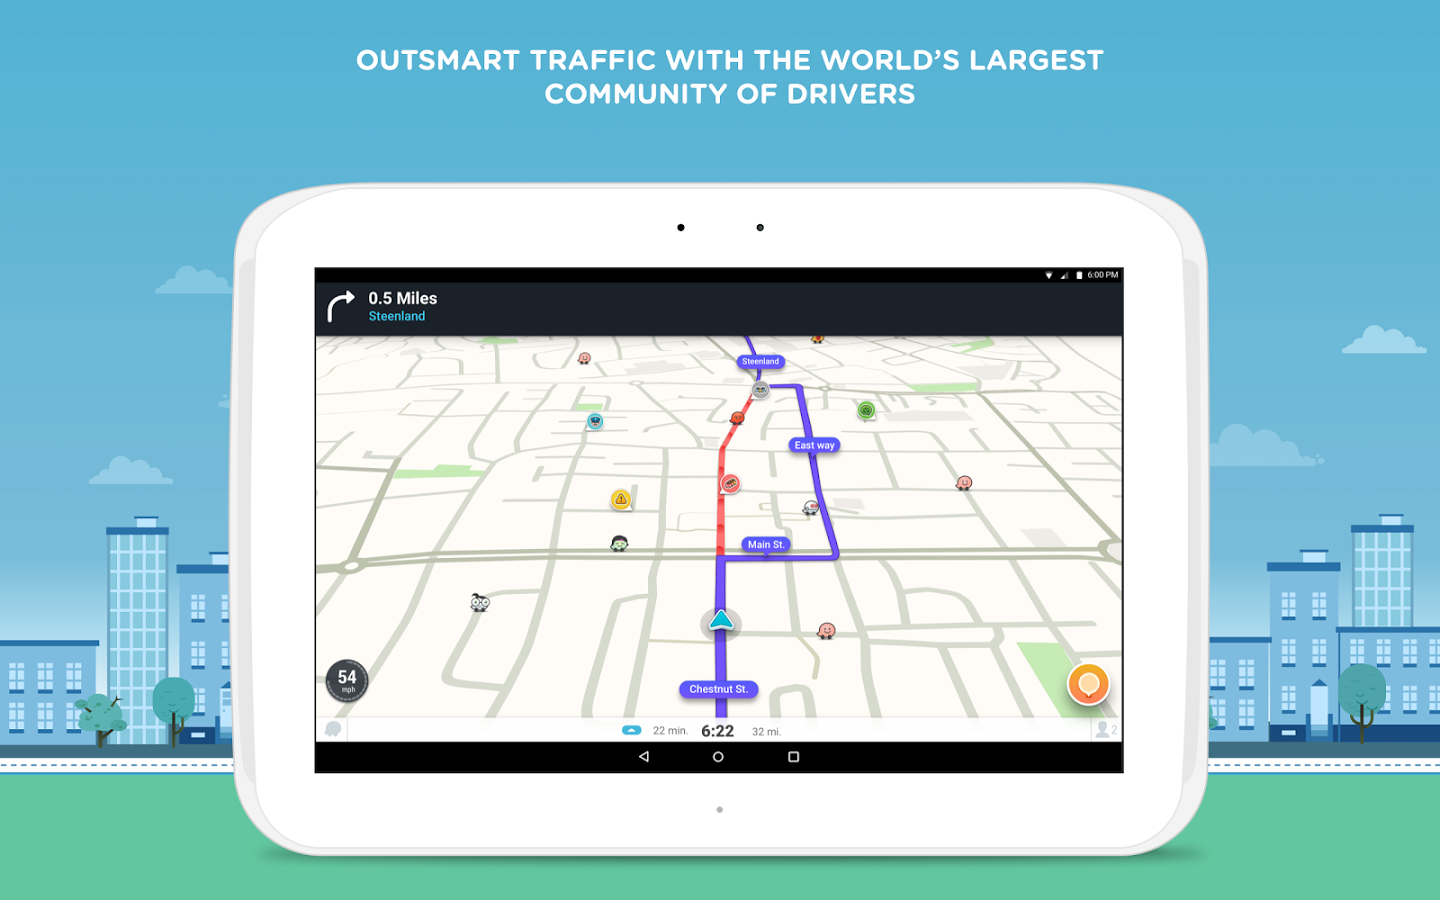 Waze navigation interface